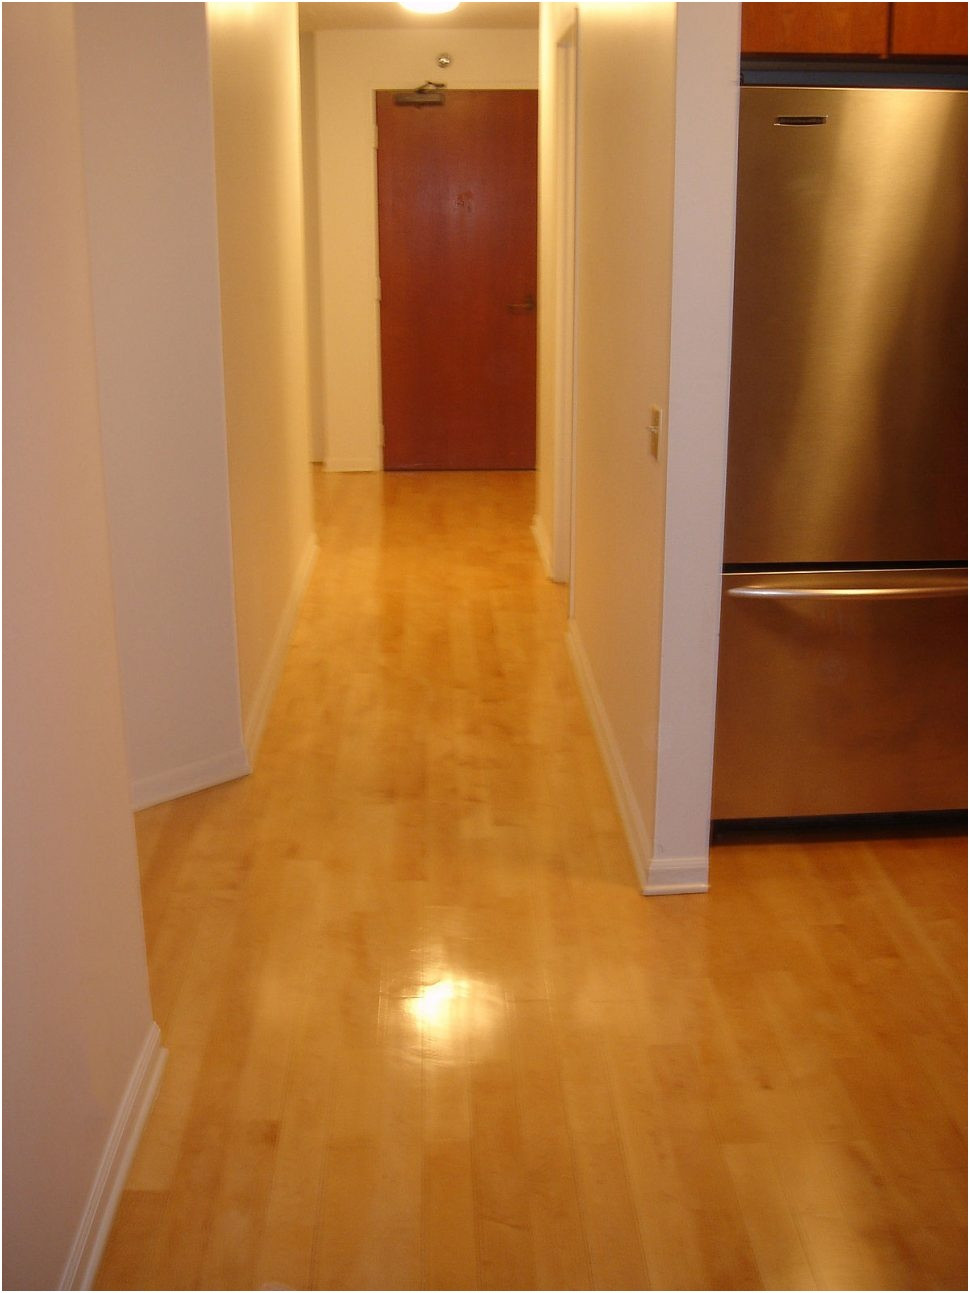 Teak Hardwood Flooring Cost Of Hardwood Flooring Over Ceramic Tile Stock 3 4 X 4 3 4 solid Golden In Hardwood Flooring Over Ceramic Tile Floor Floor Shop Hardwood Flooring at Lowes Wilson Llc Of Hardwood